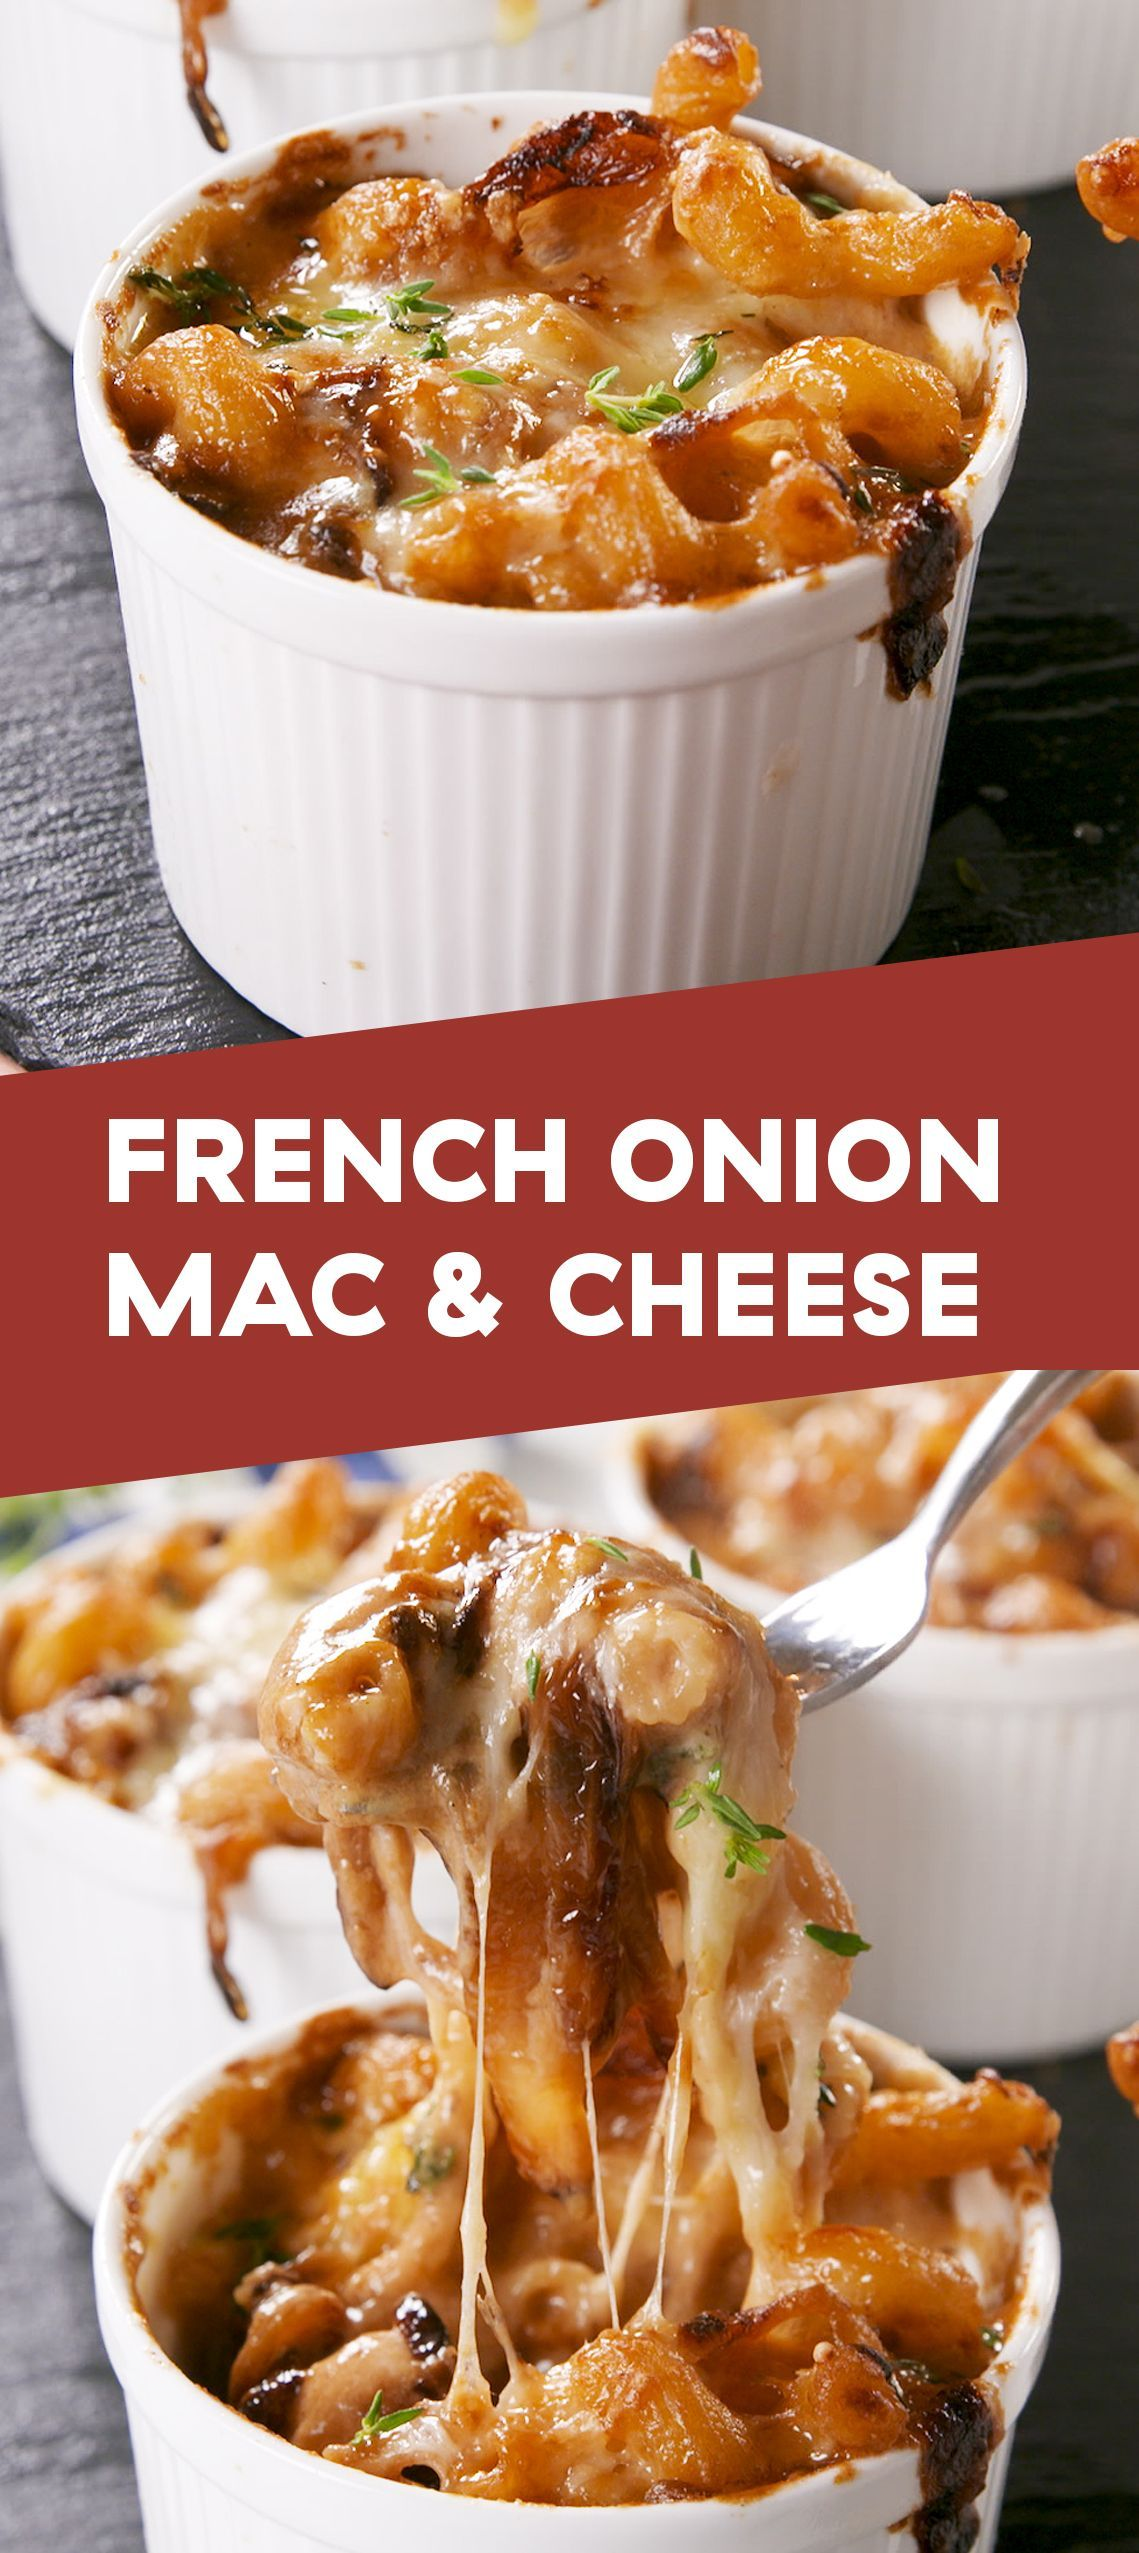 French Onion Mac Cheese Is The Grown Up Version Of Your Favorite Childhood Dinnerdelish In 2020 Recipes Food French Onion Mac And Cheese Recipe